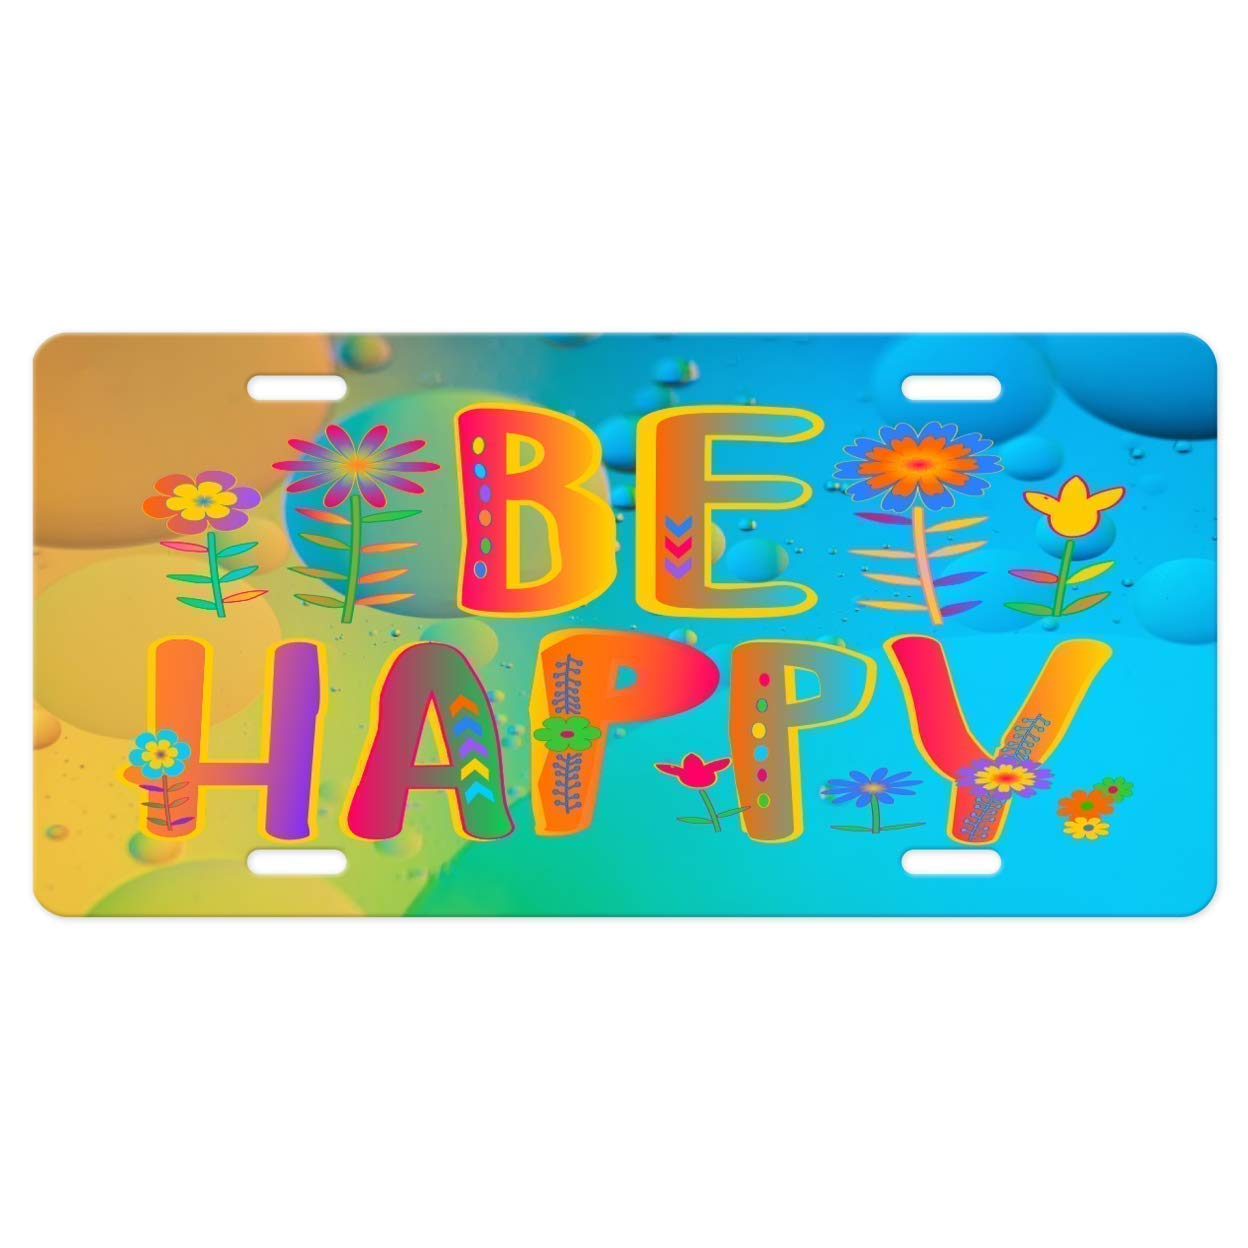 Be Happy Quote in Fun Colorful Vivid colors on a Fun Colorful Bubbles YELLOW AND BLUE background metal Vanity Car License Plate Tag